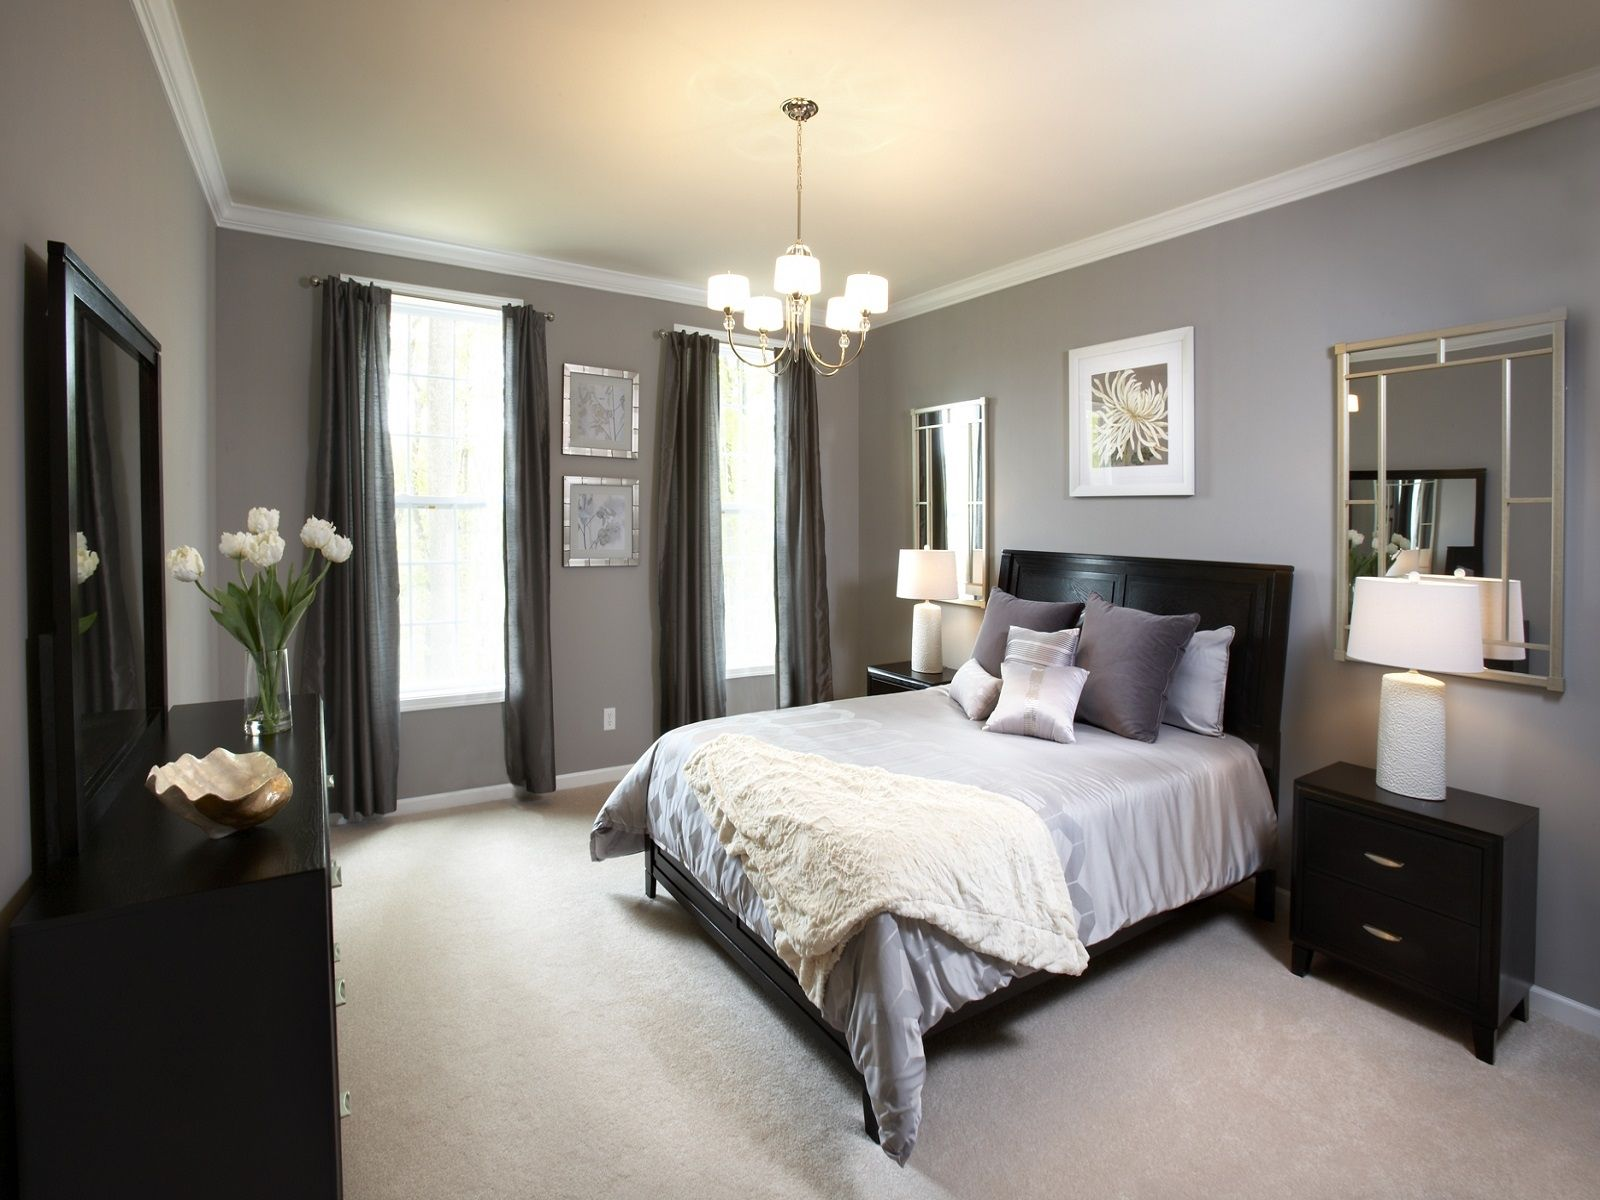 45 beautiful paint color ideas for master bedroom bedrooms master bedroom and galleries - Master bedroom decorating tips ...